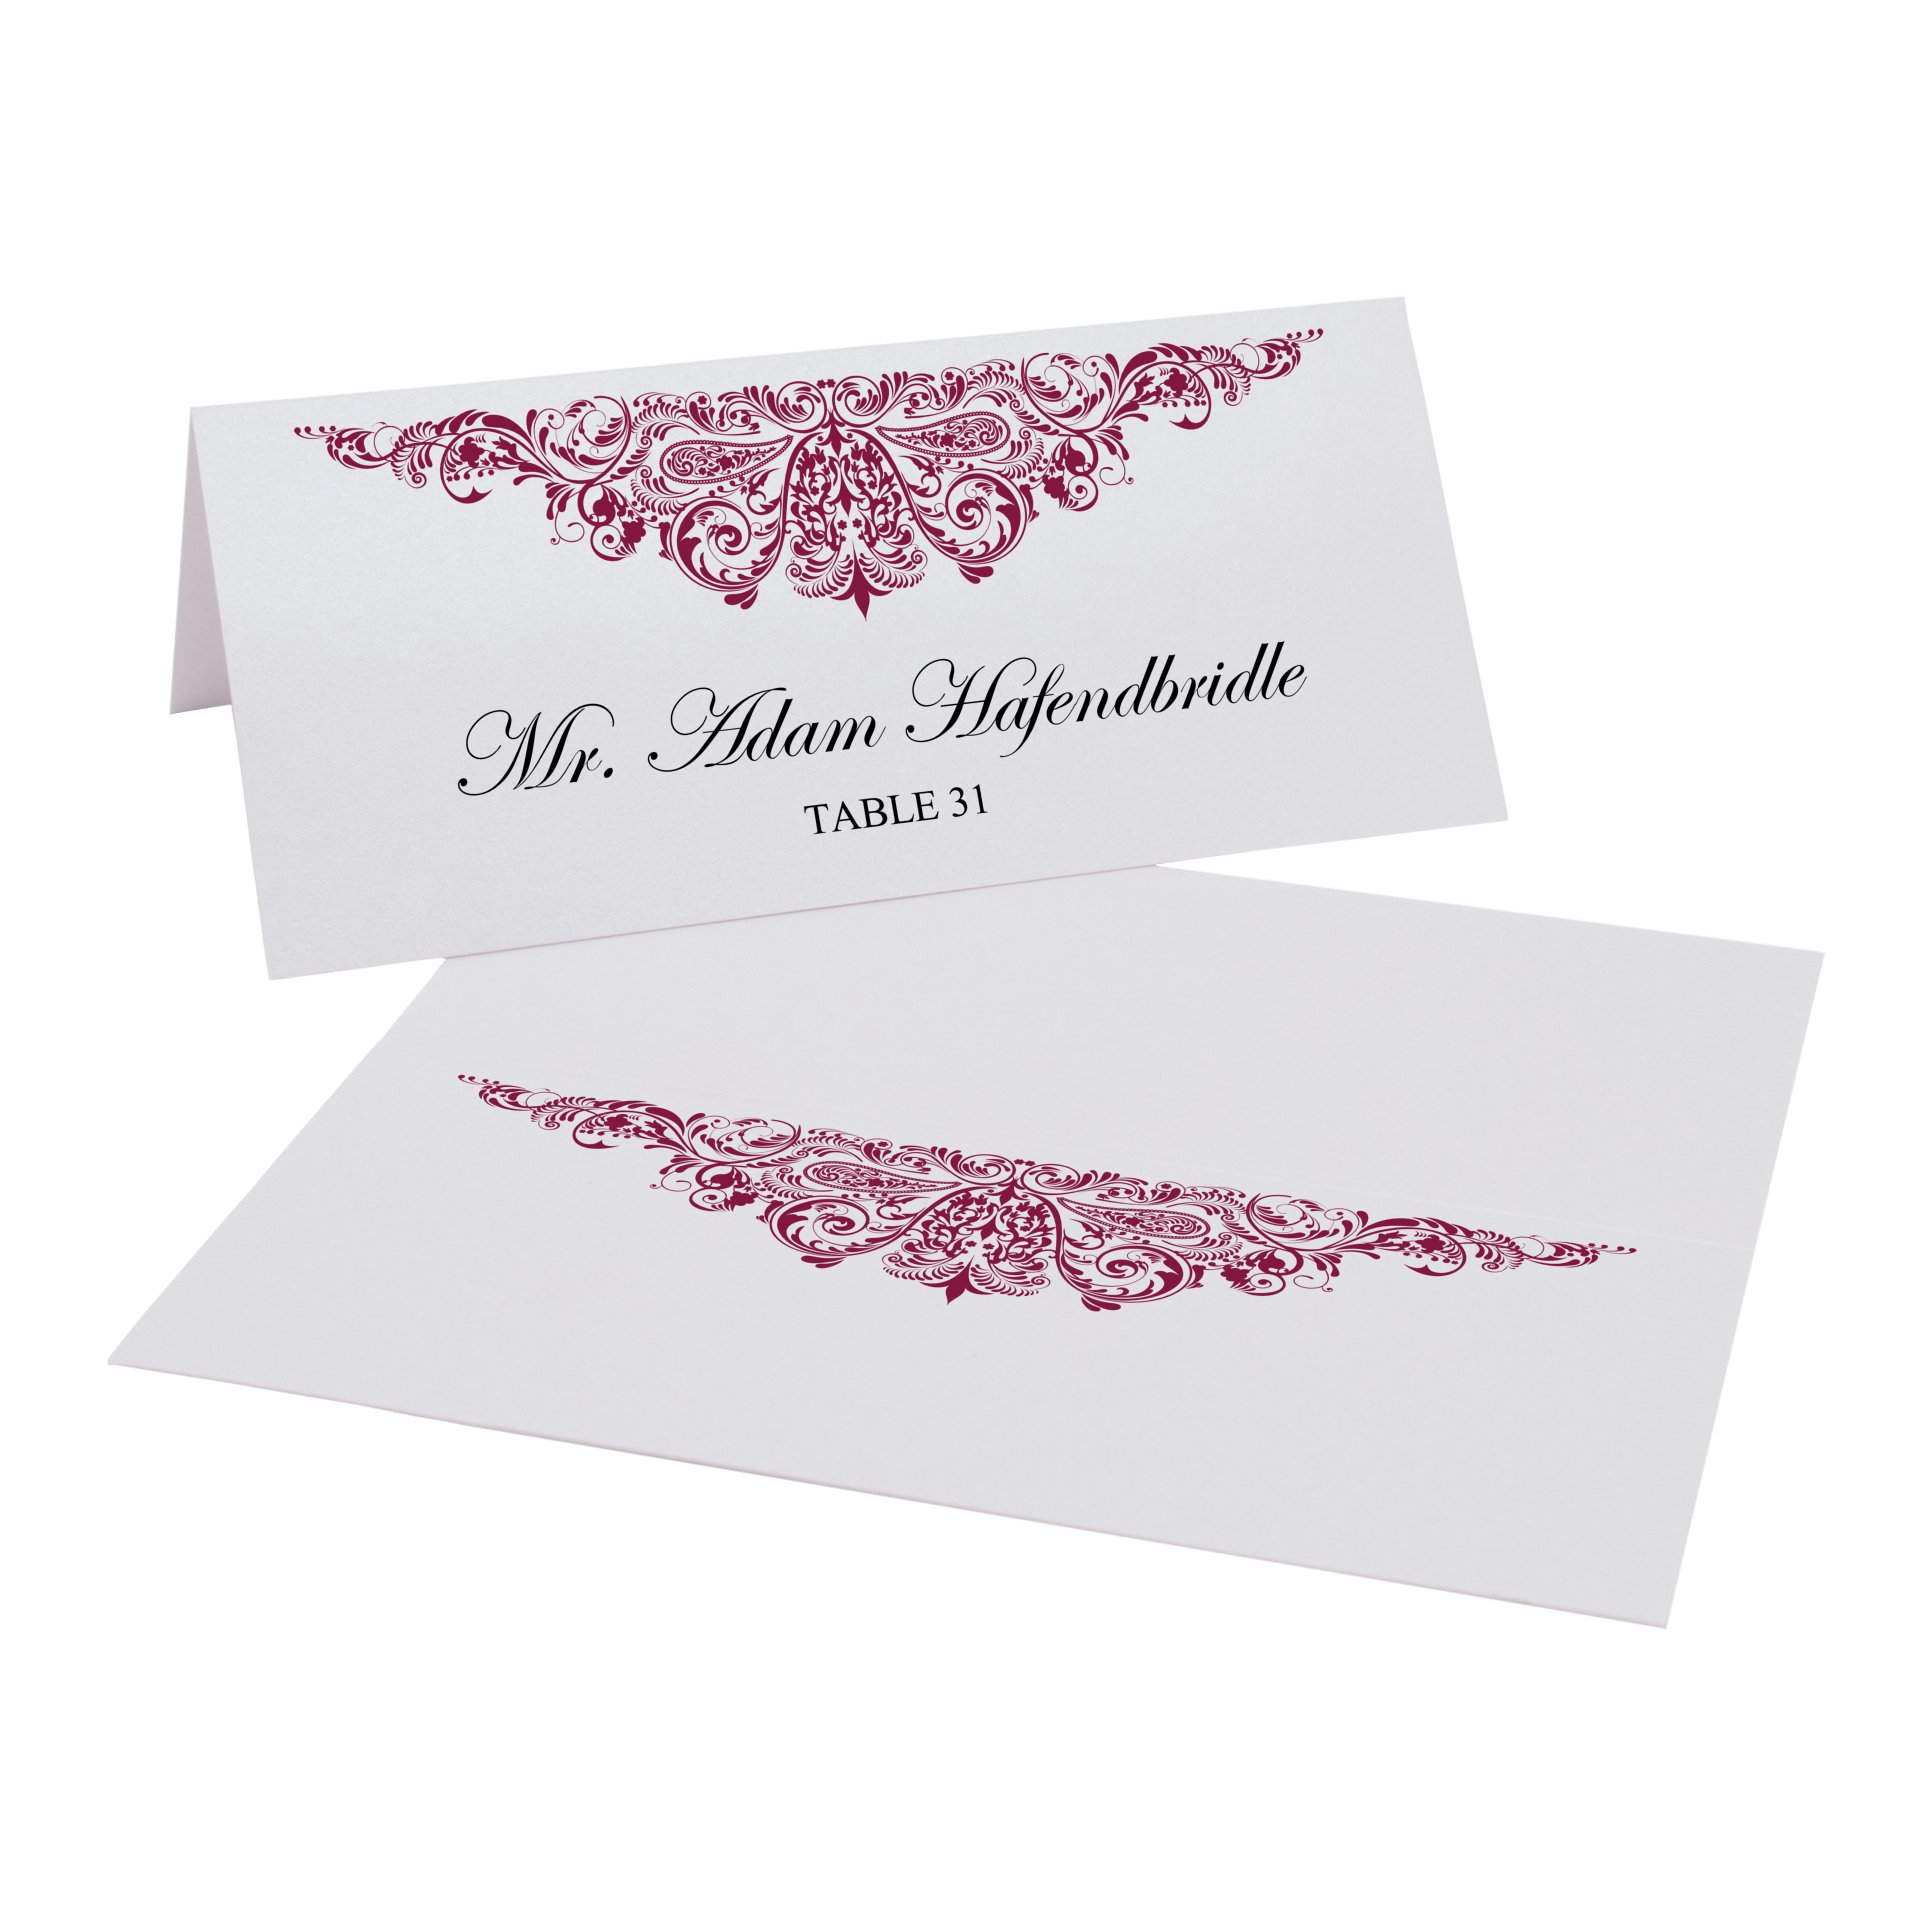 Documents and Designs Paisley Place Cards, Burgundy, Set of 150